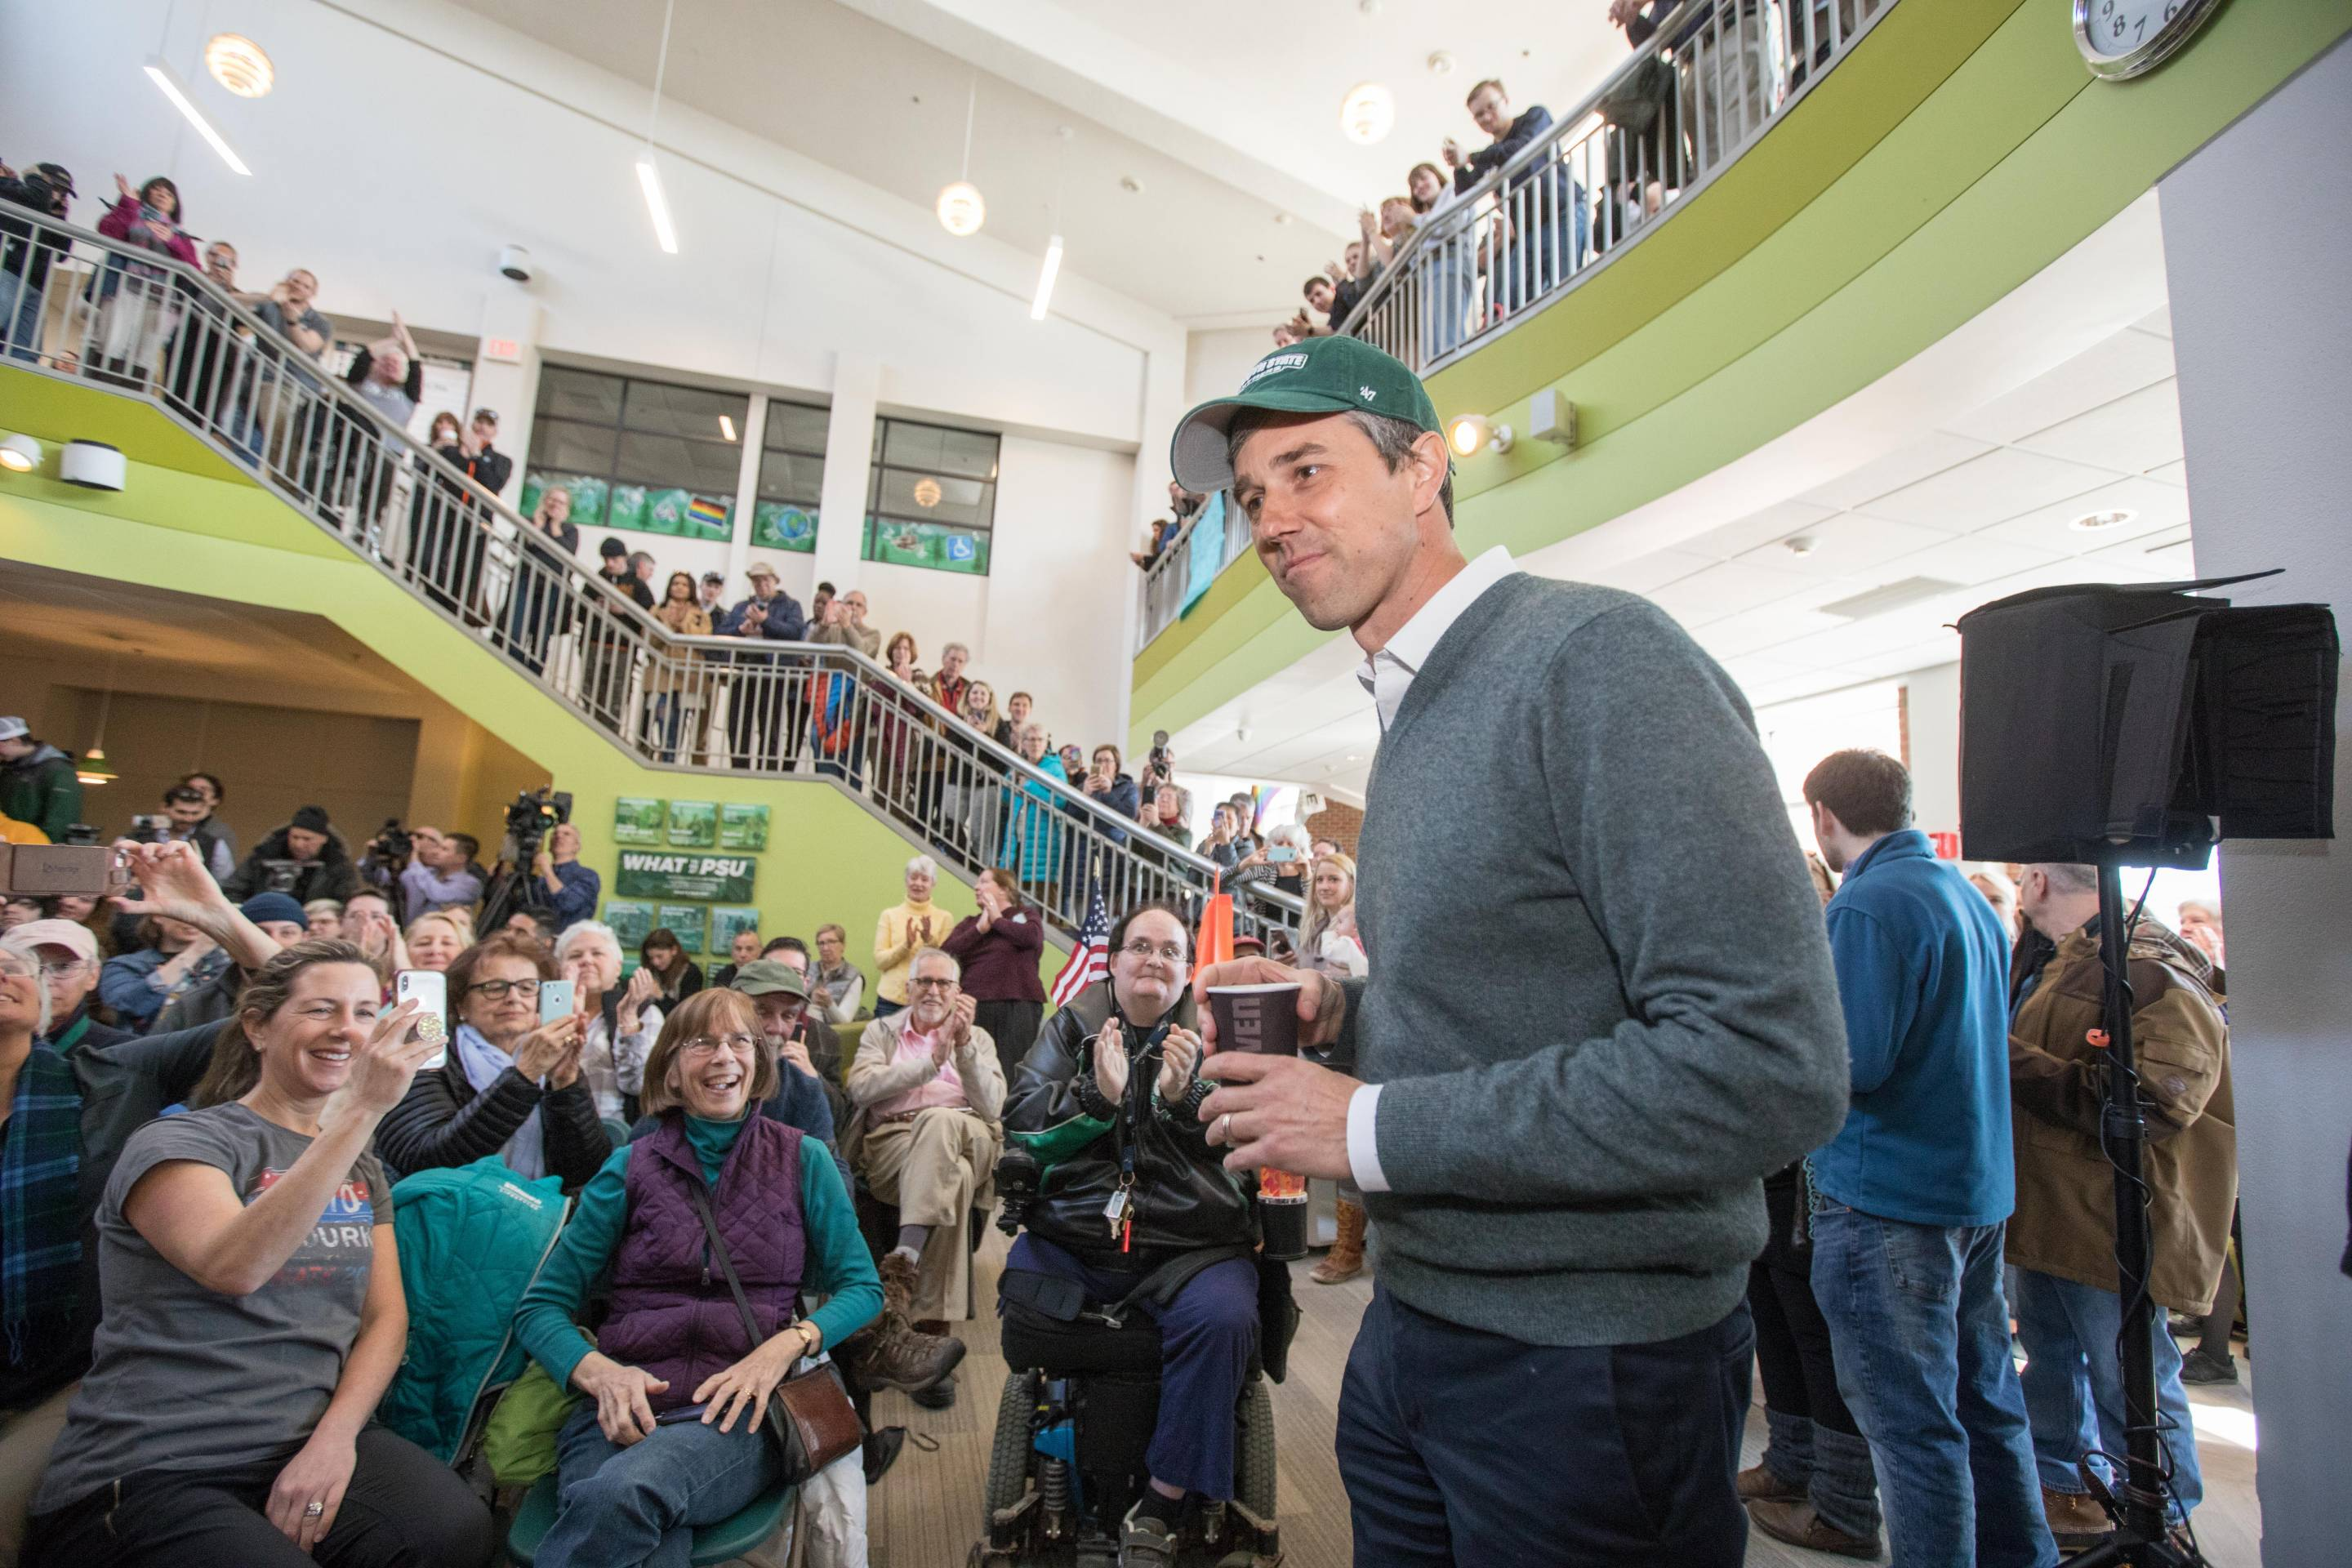 Beto O'Rourke Visits New Hampshire For First Time Since Launching Presidential Campaign